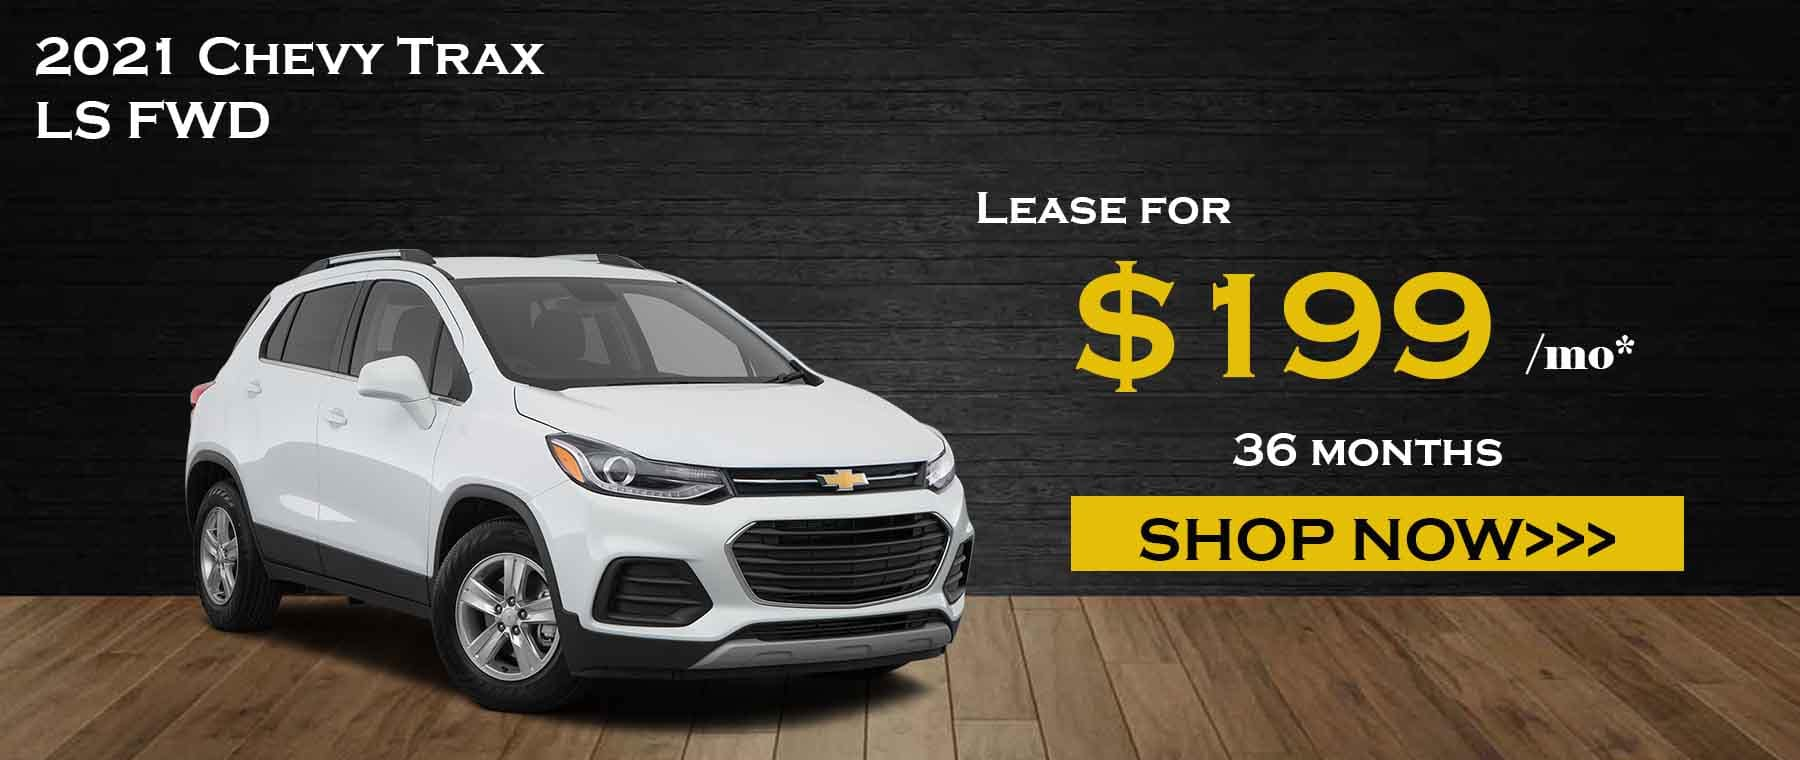 March 2021 trax lease